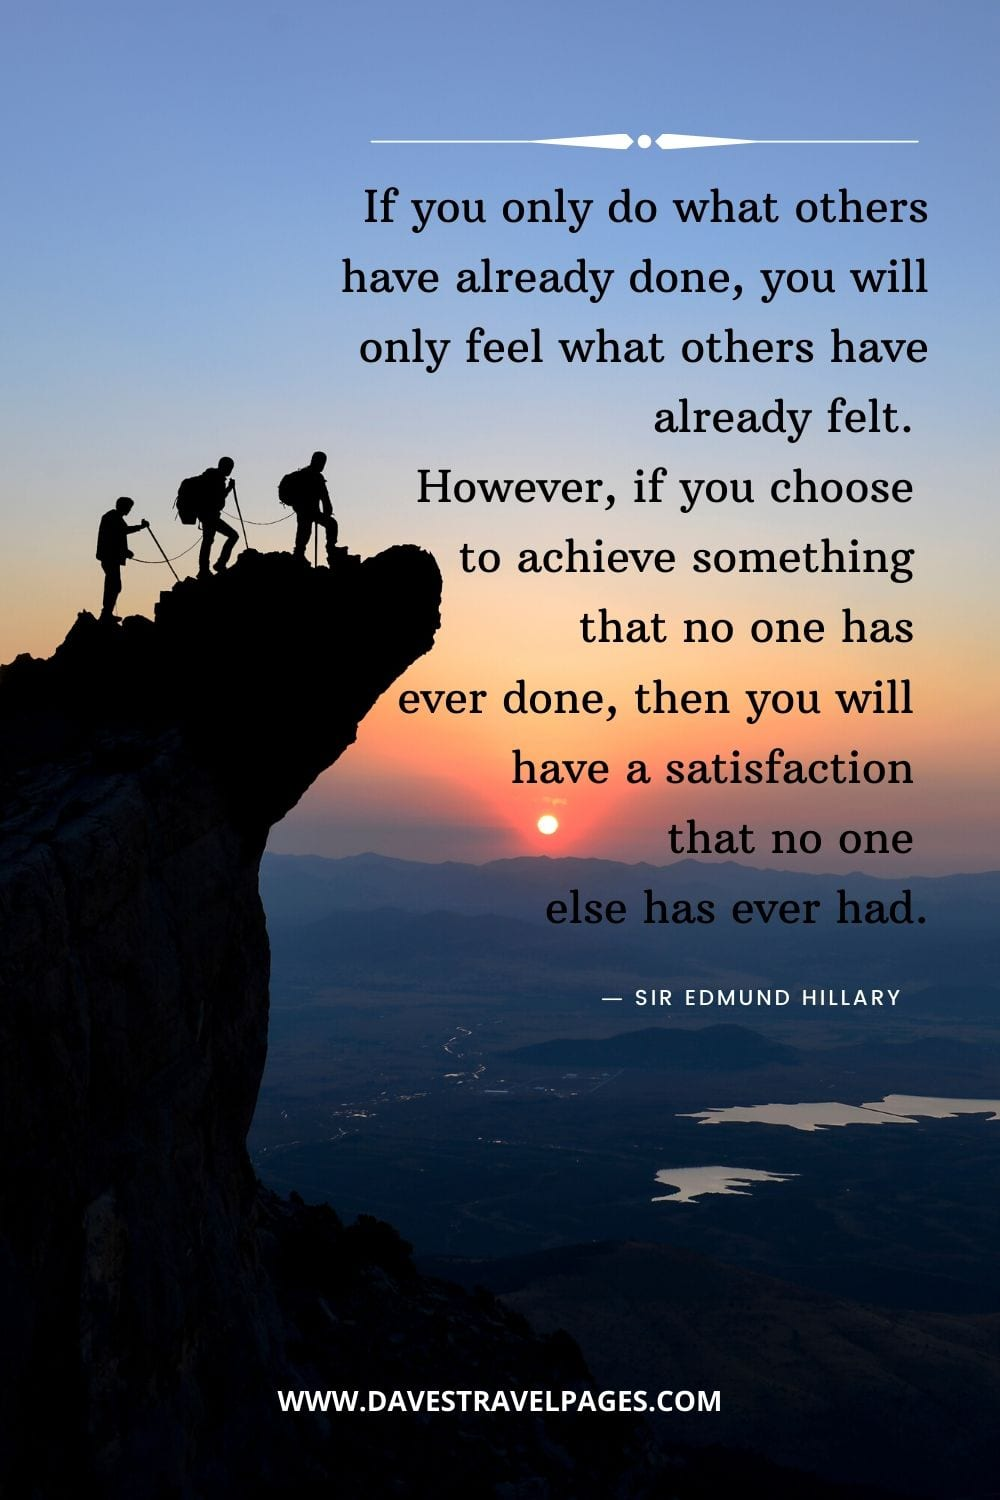 """""If you only do what others have already done, you will only feel what others have already felt. However, if you choose to achieve something that no one has ever done, then you will have a satisfaction that no one else has ever had."" ― Sir Edmund Hillary Quotes"